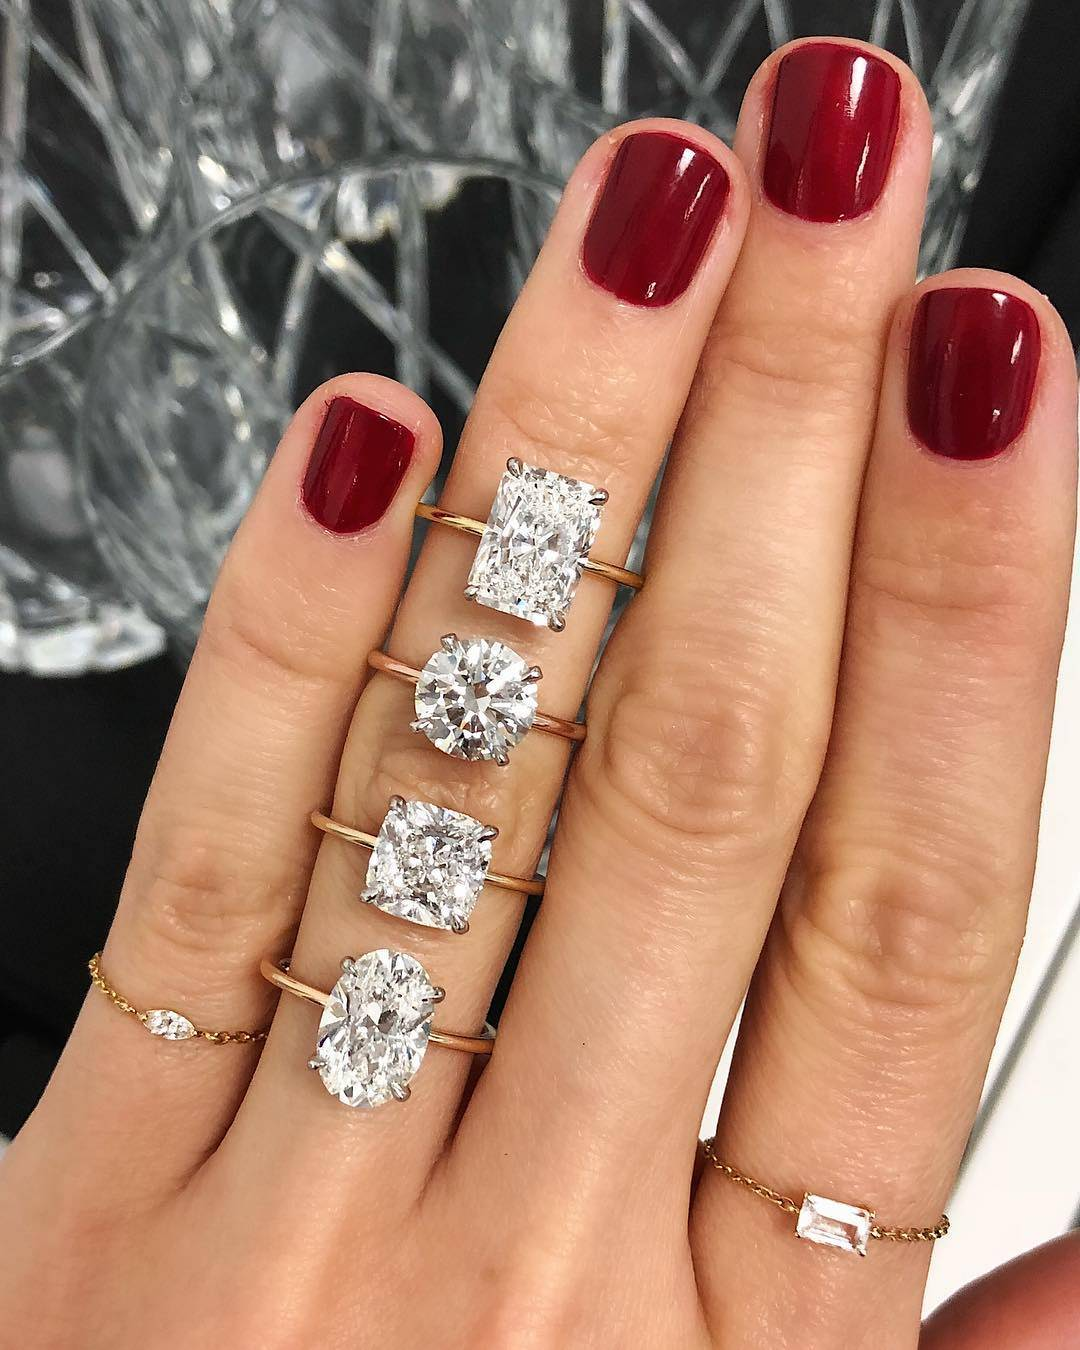 Ring On Left Ring Finger: 7 Engagement Ring Diamond Shapes To Know